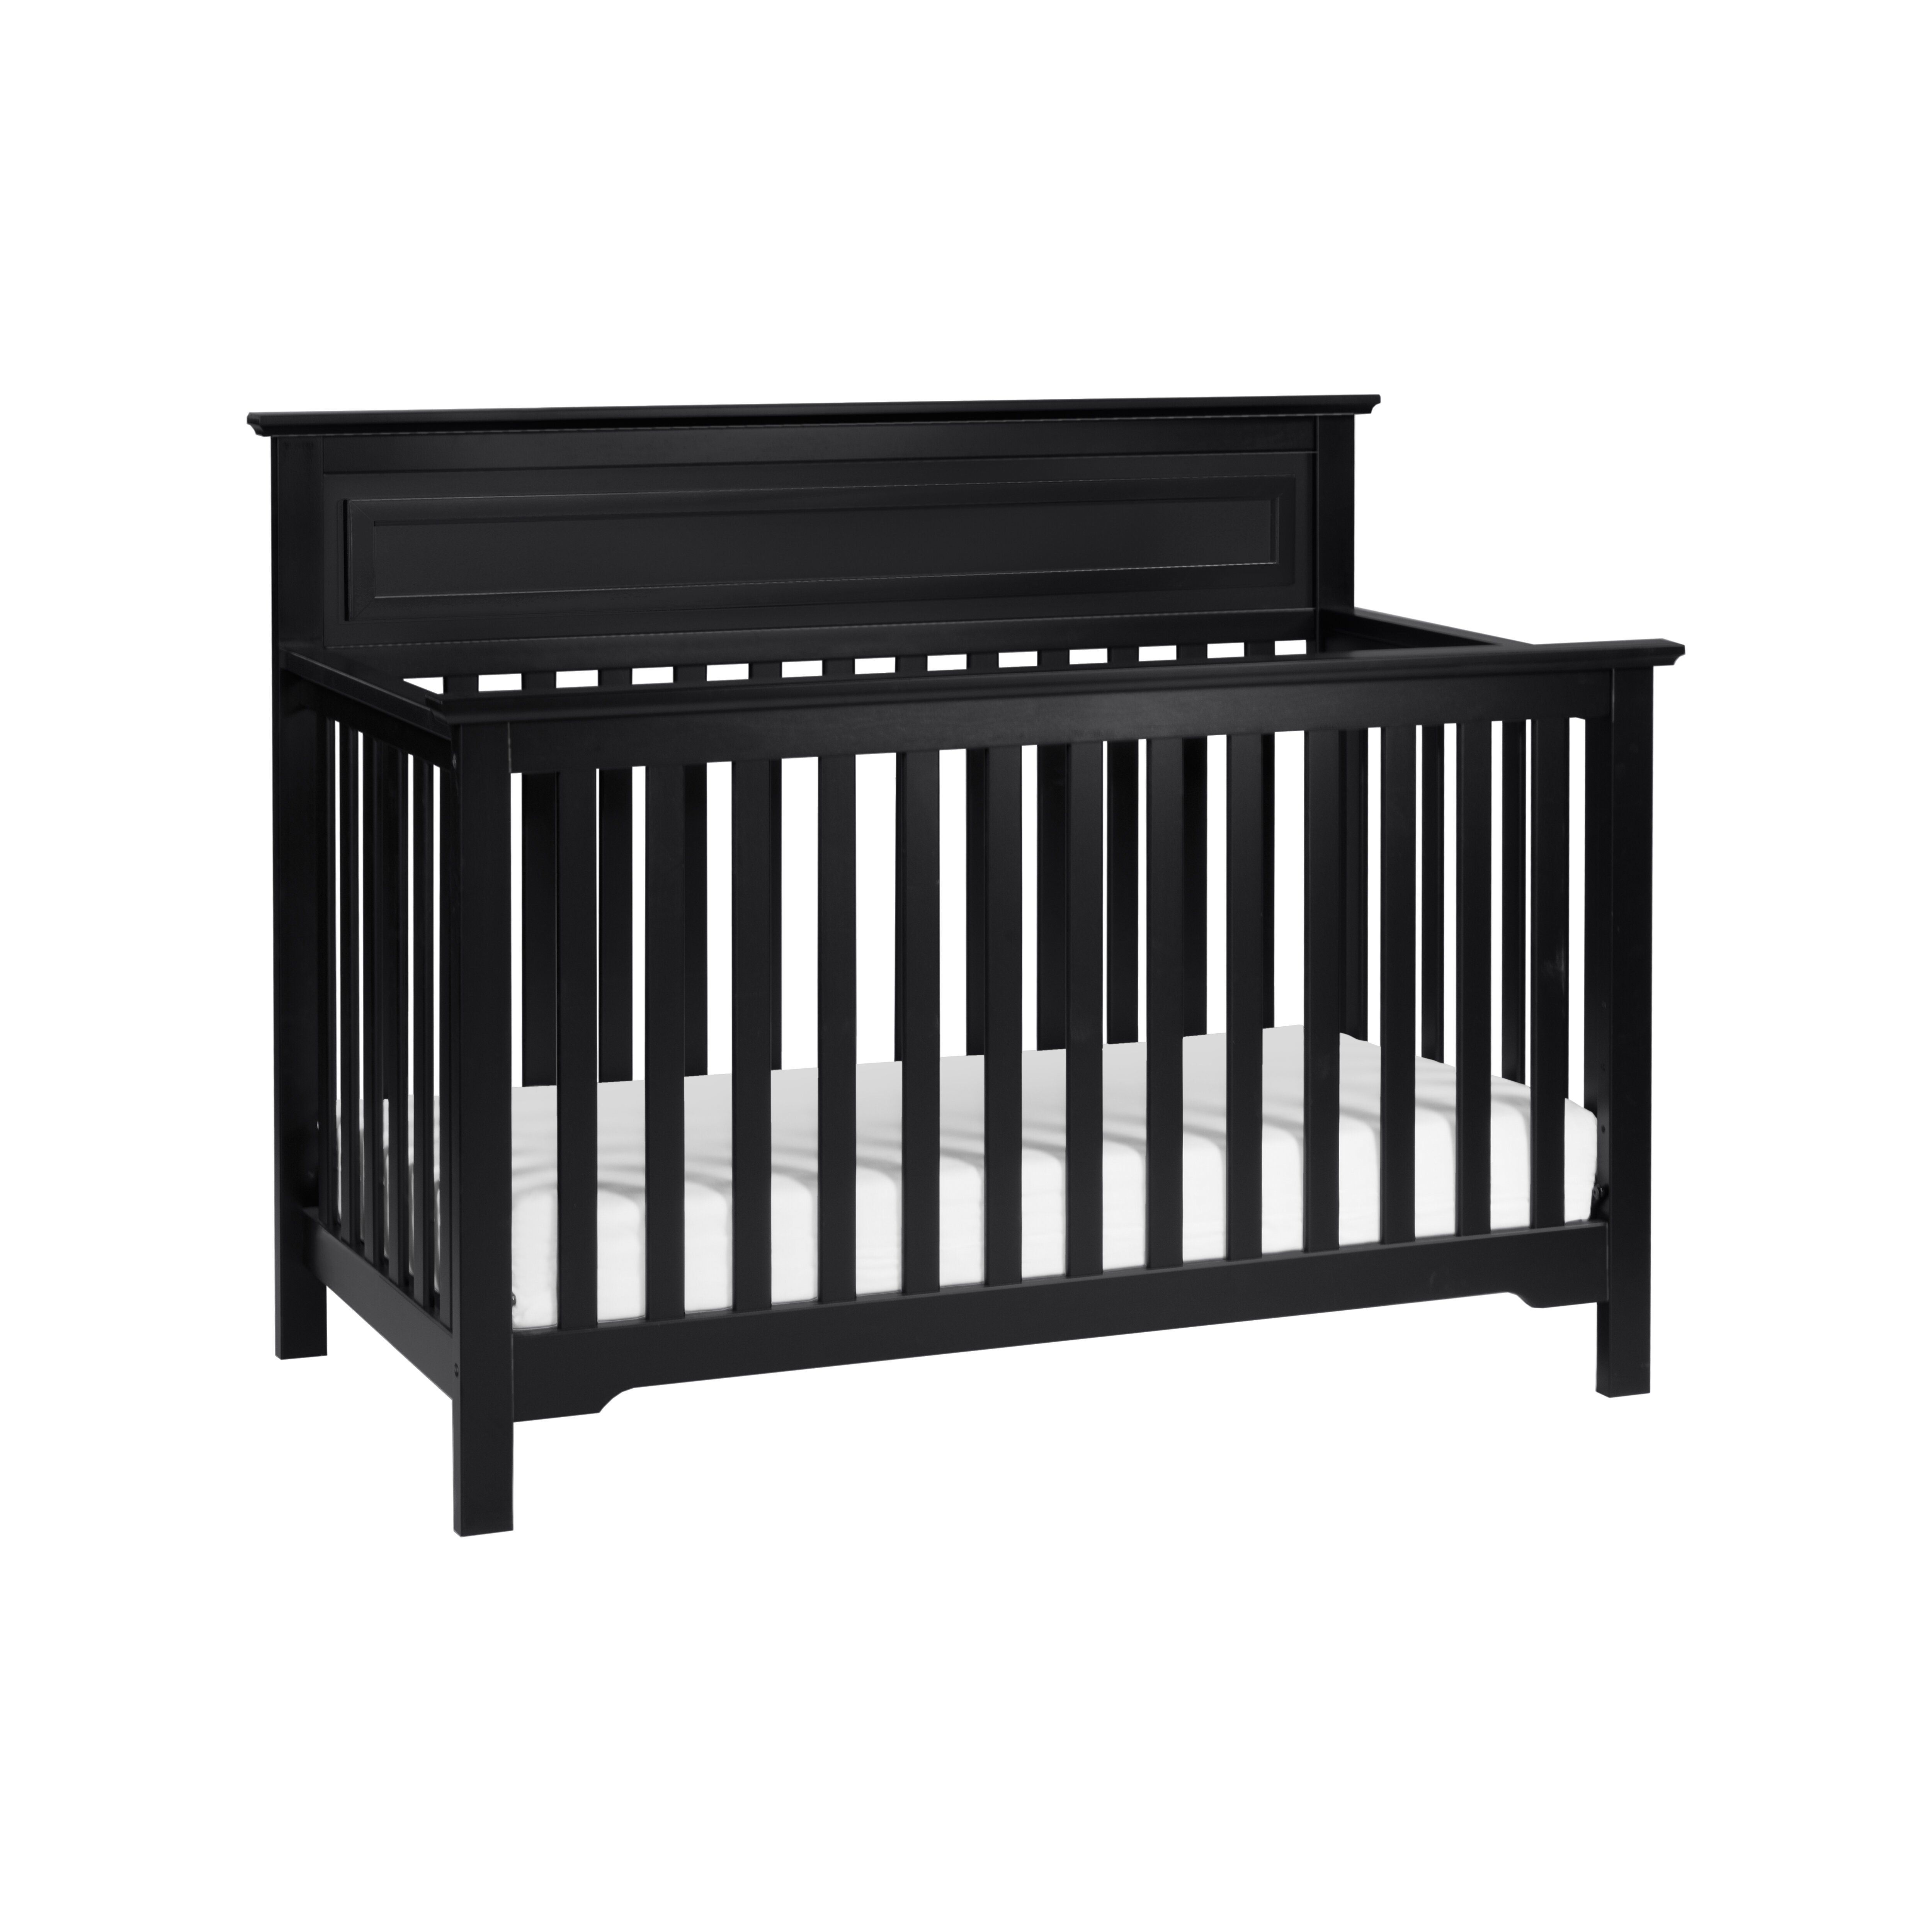 Baby cribs for sale used - Davinci Autumn 4 In 1 Convertible Crib